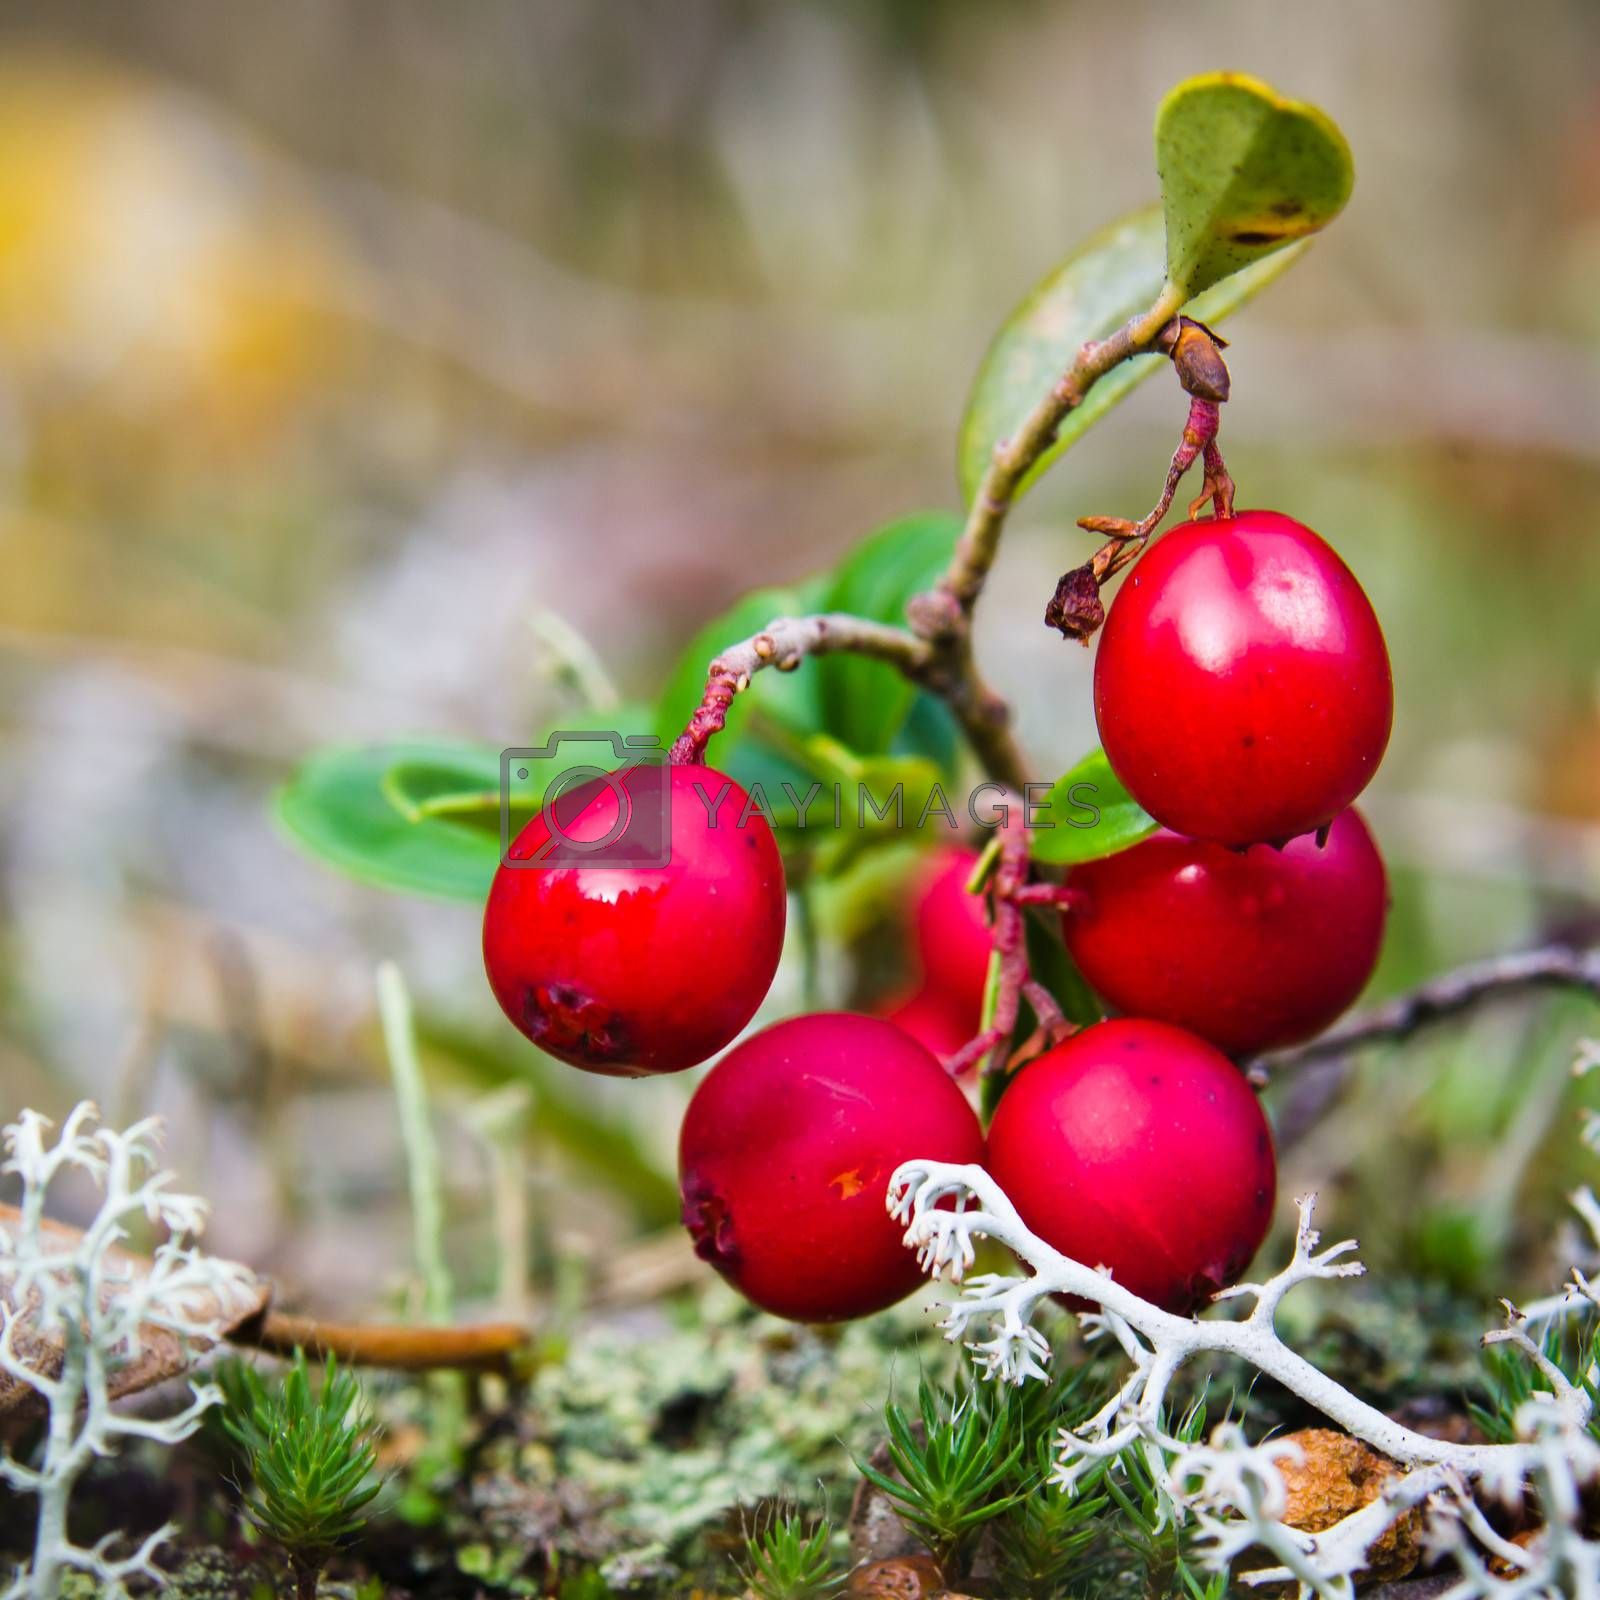 Red berries of a cowberry on bushes, a close up